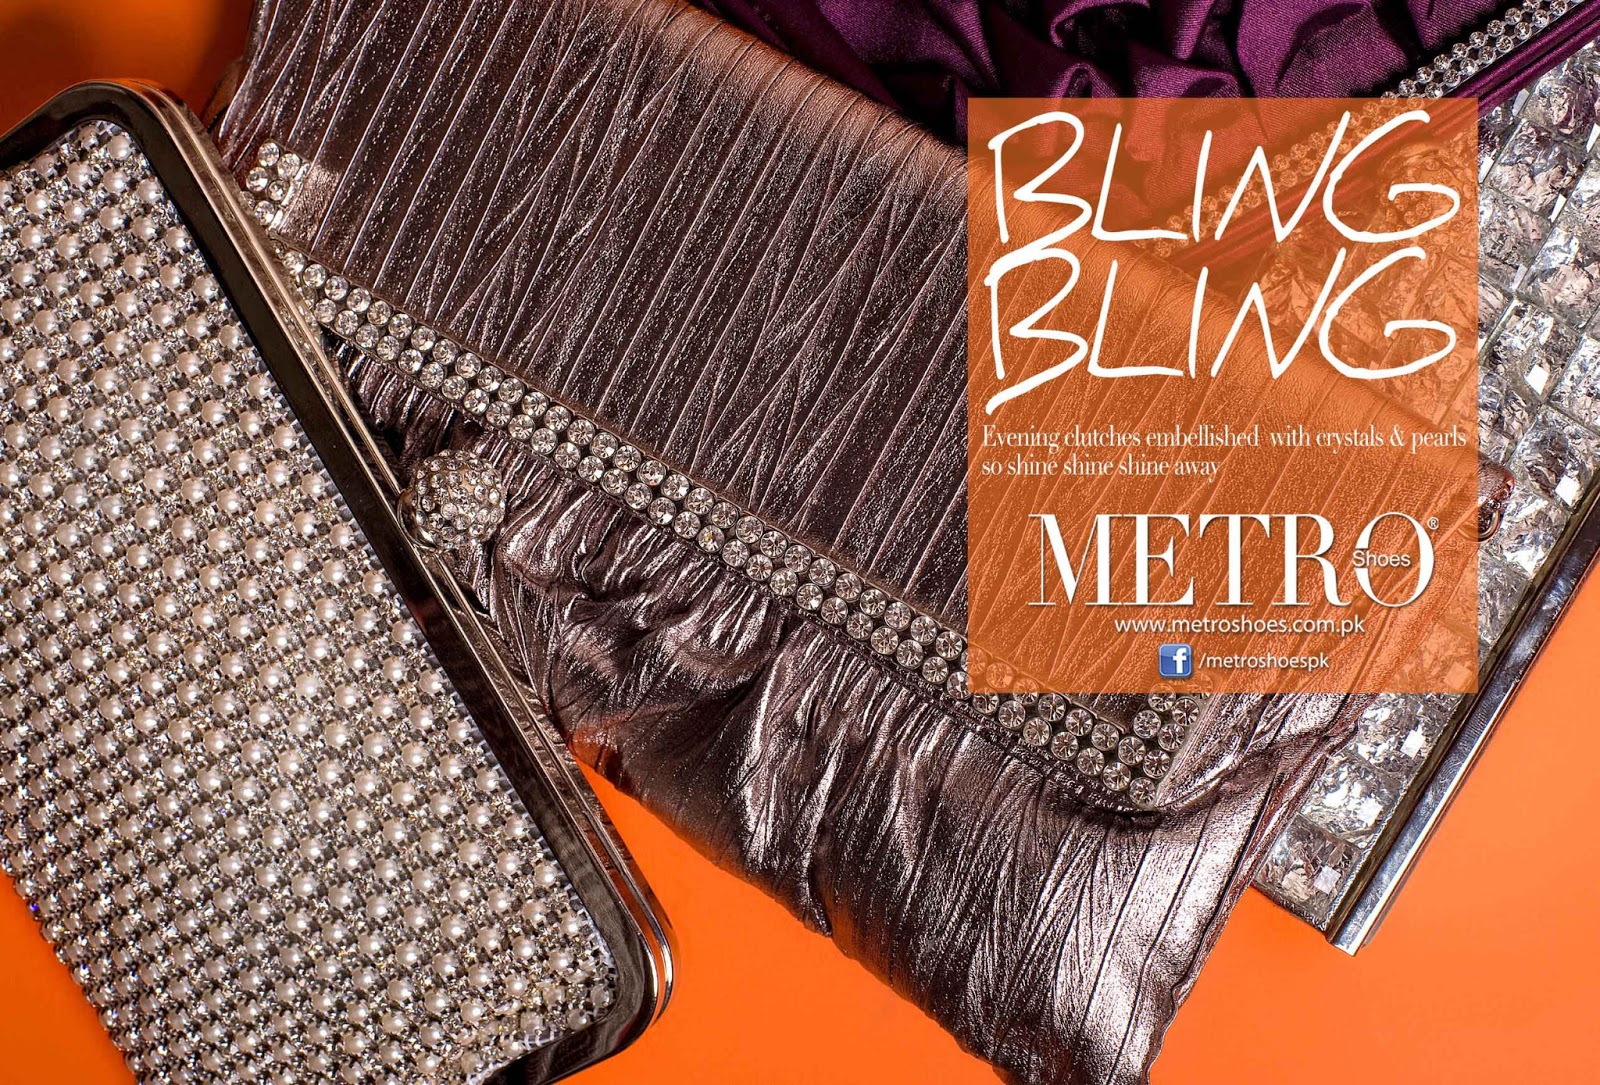 discover latest trends select for genuine meticulous dyeing processes Footwear Model: Bling Bling Clutches Collection At Metro Shoes